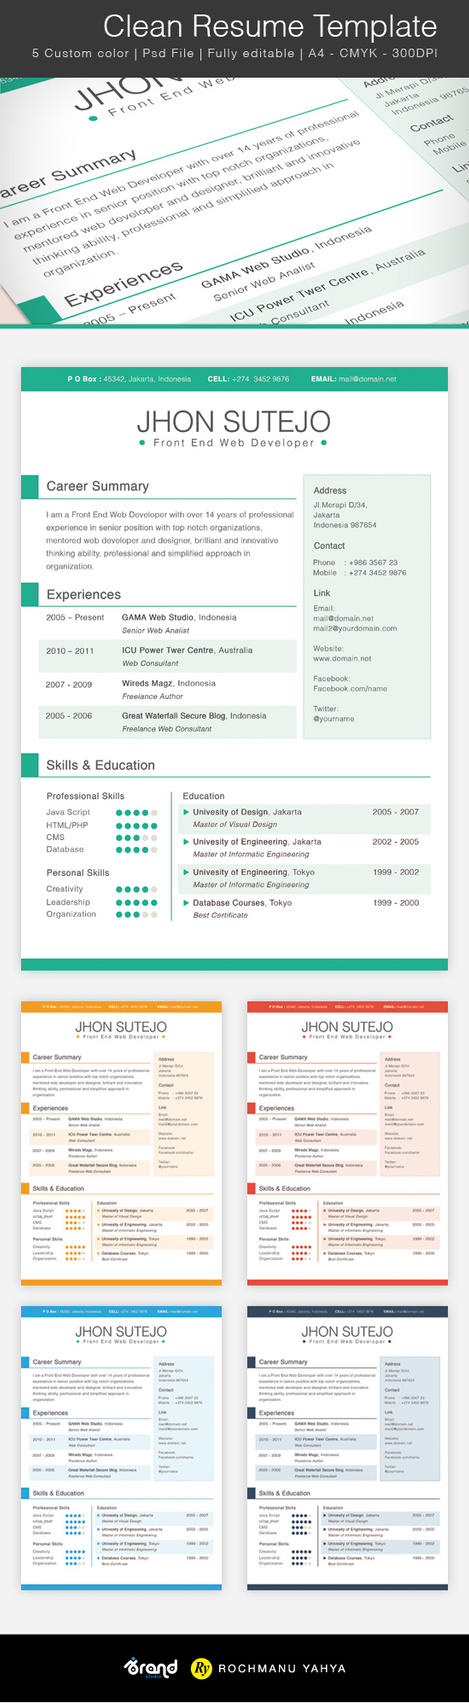 Clean One Page Resume Template by yahya12